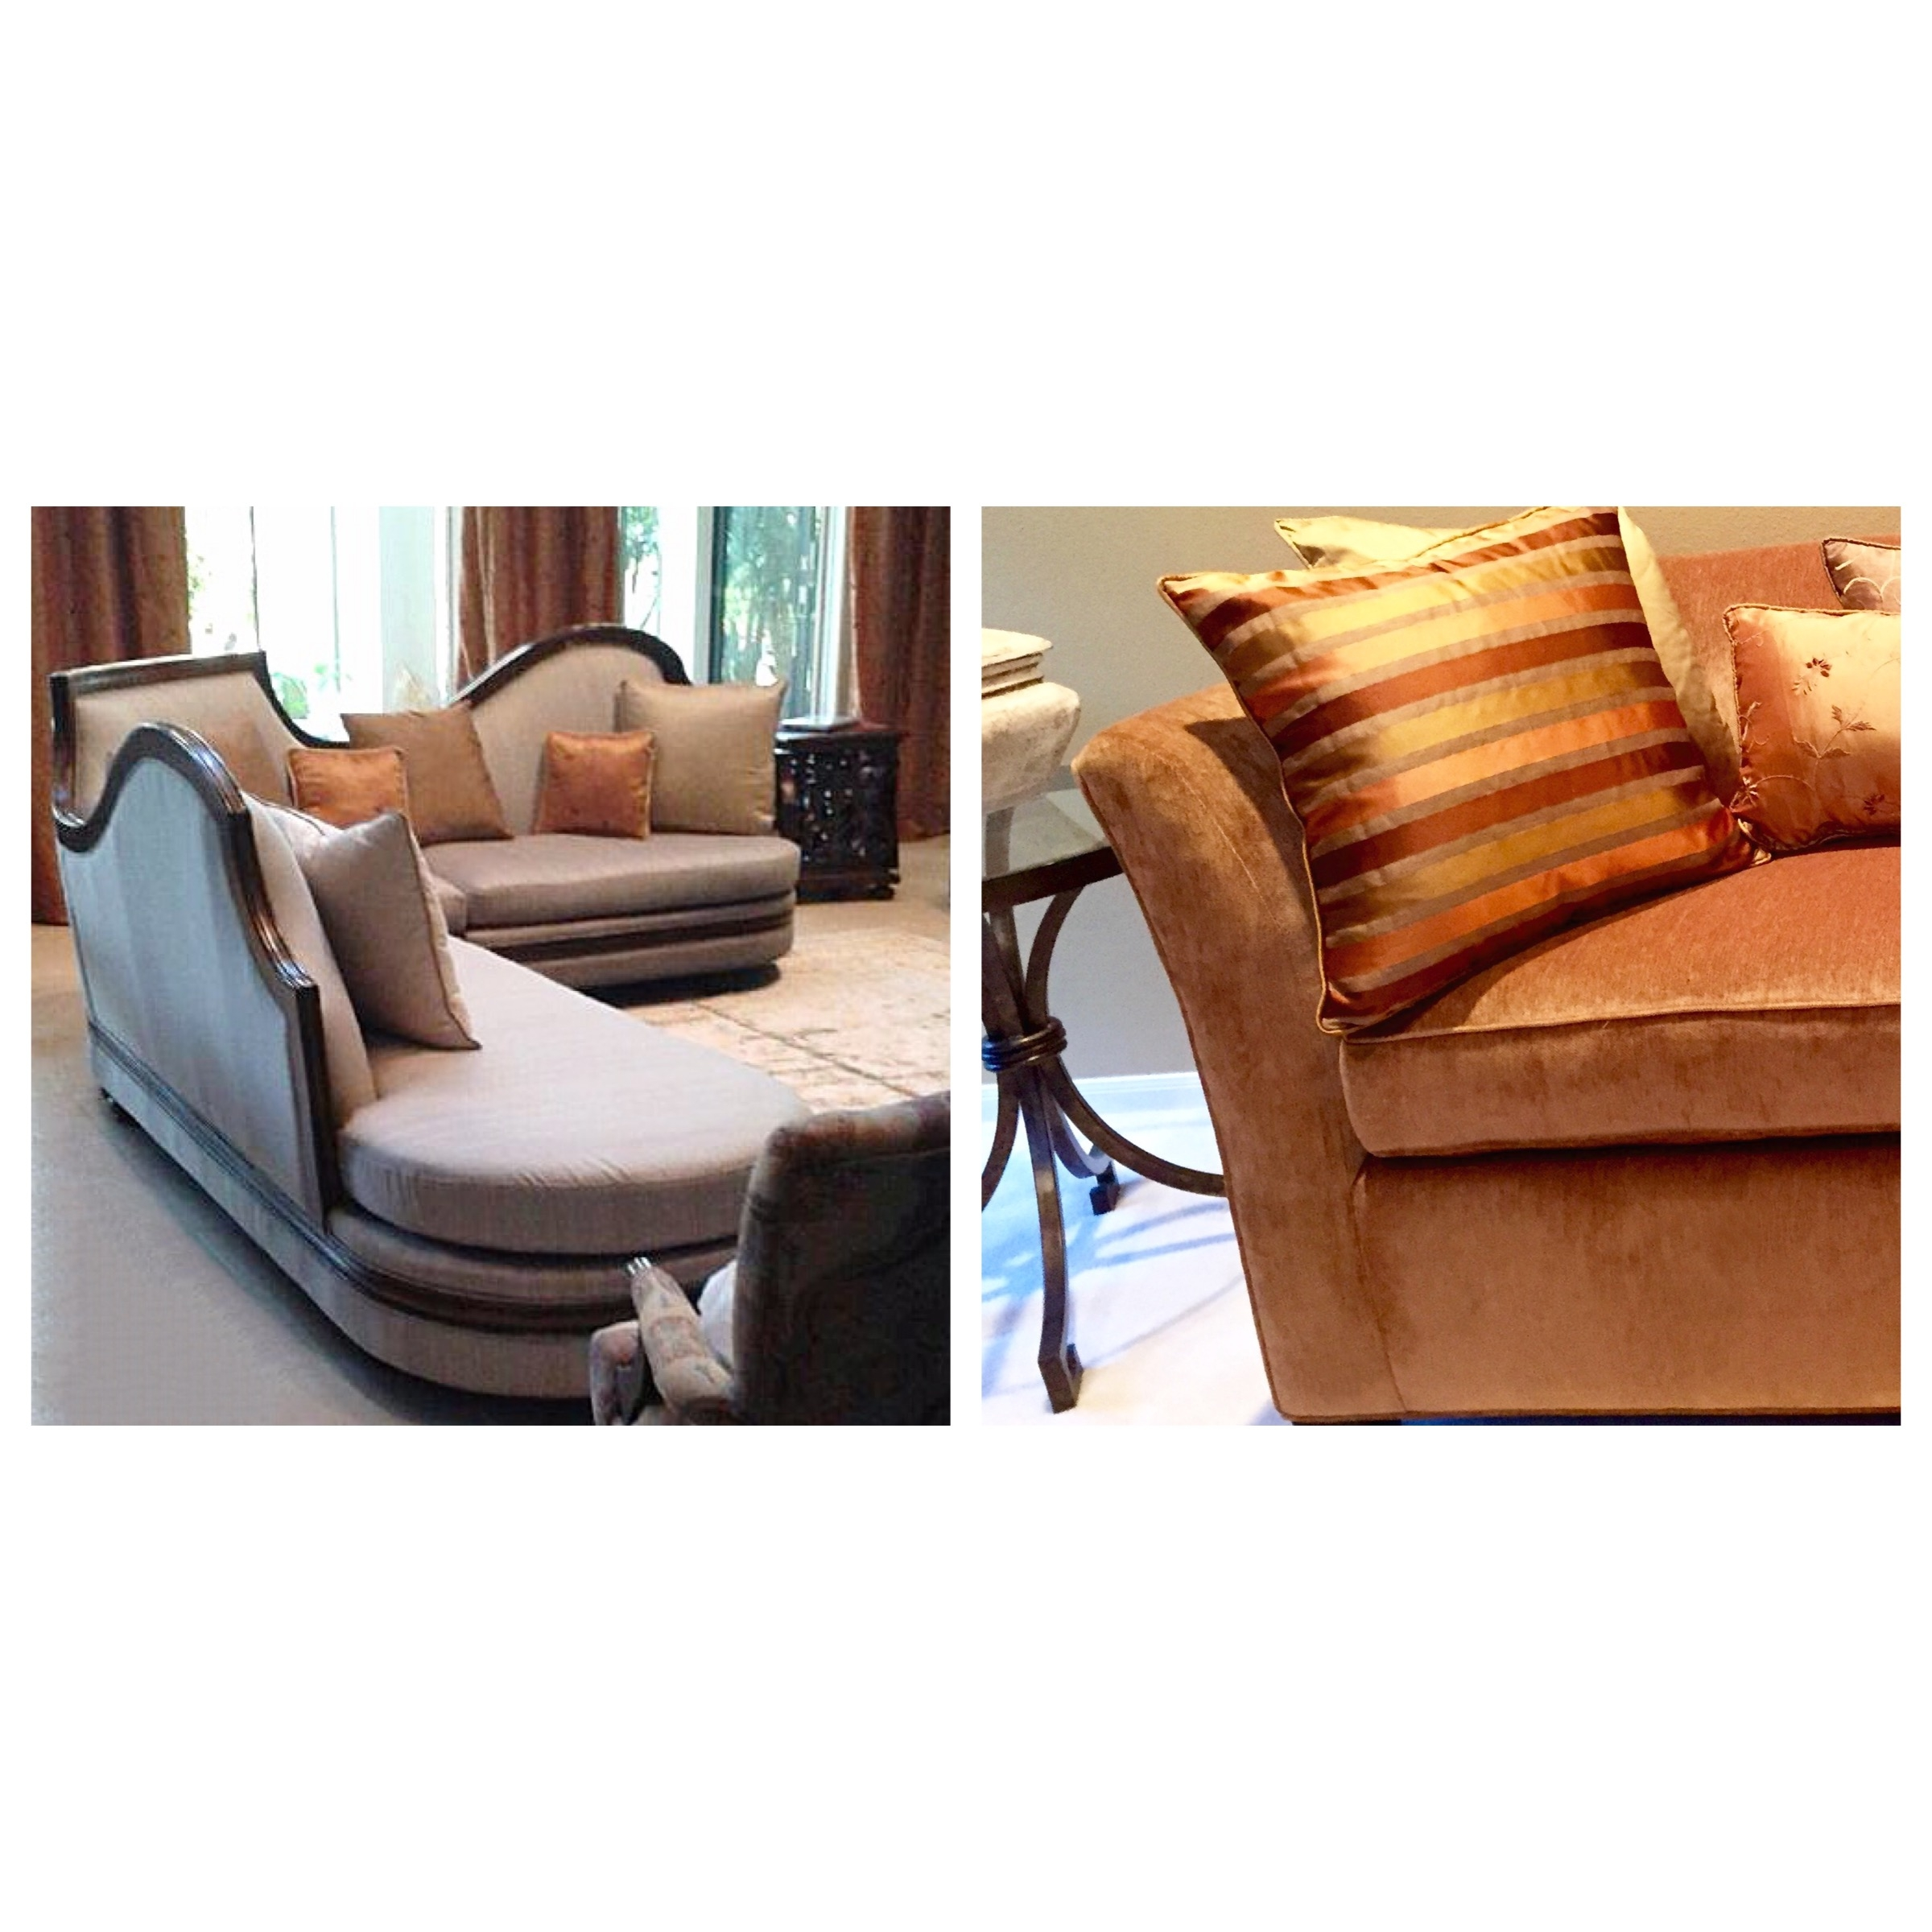 Ask About Our Fine Custom Upholstery!